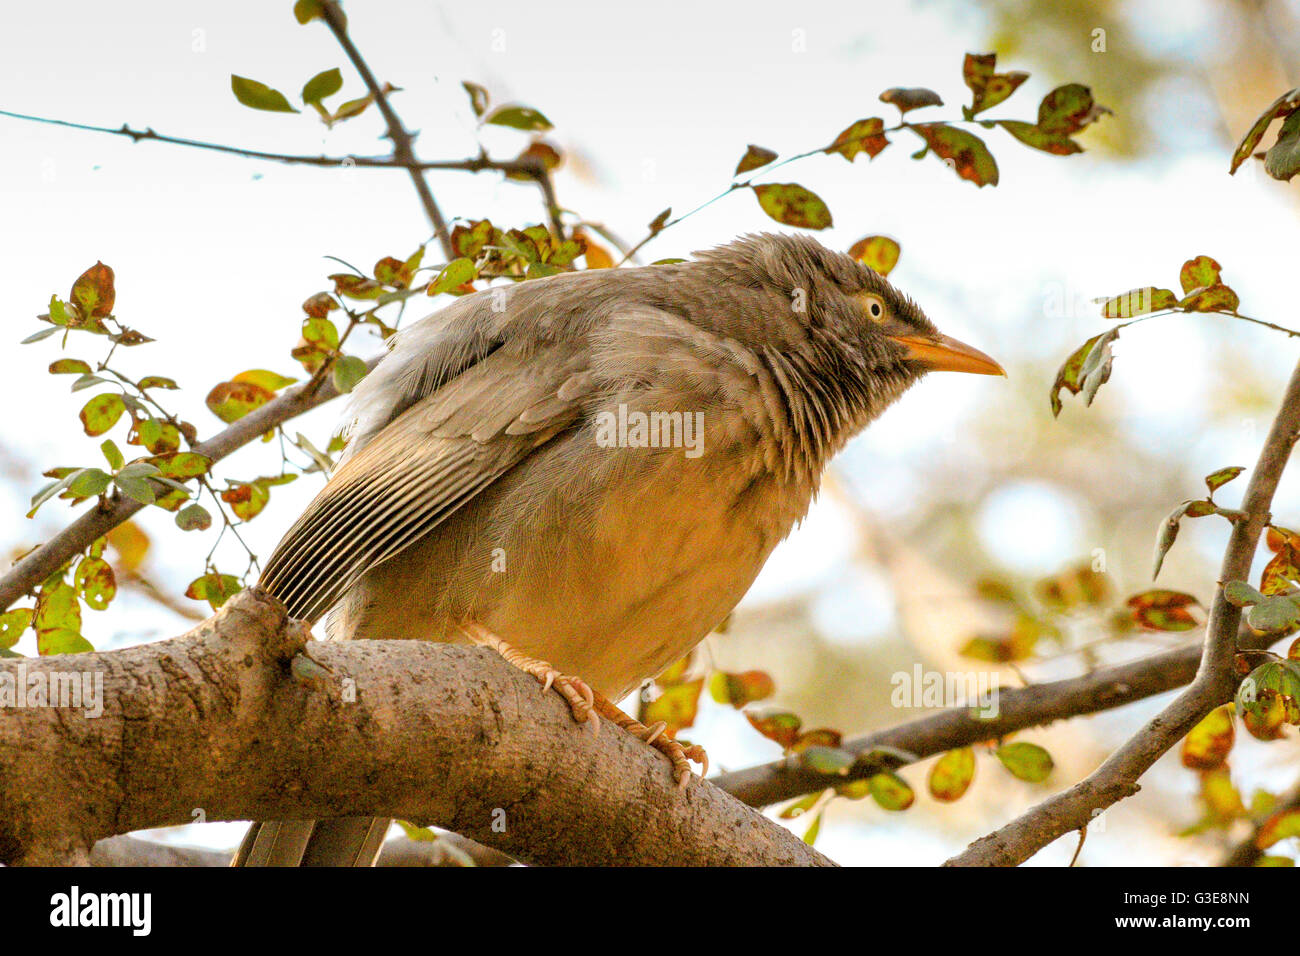 RufousTreepie bird sitting on a tree in Ranthambore National Park, India Stock Photo